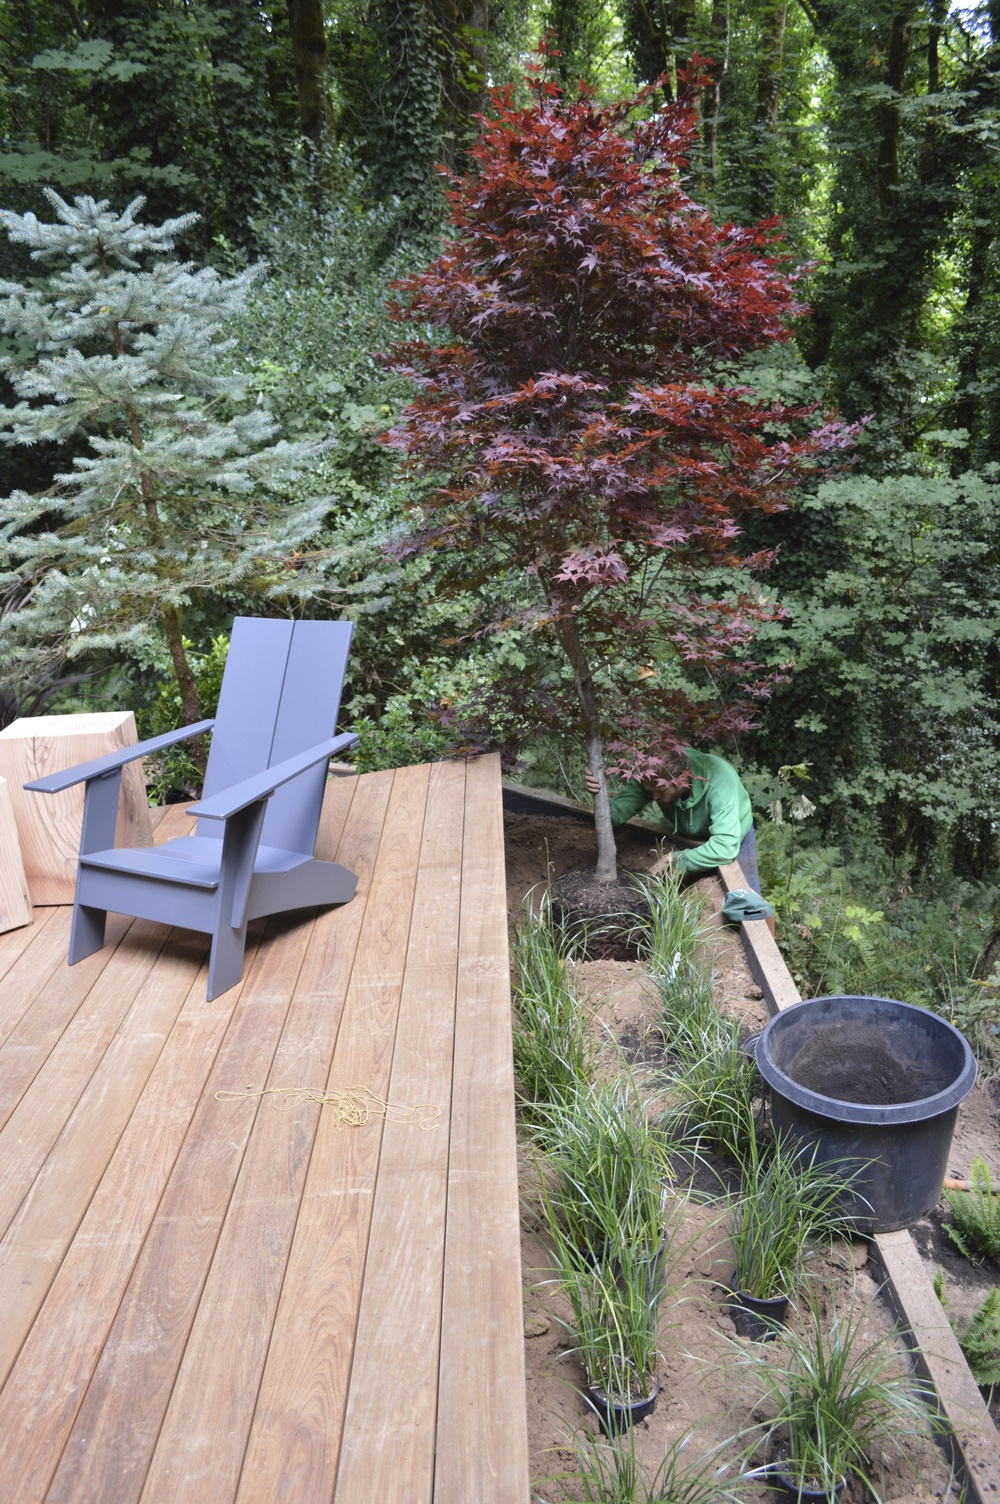 Ipe Decking / Slough Sedge / Emperor Maple